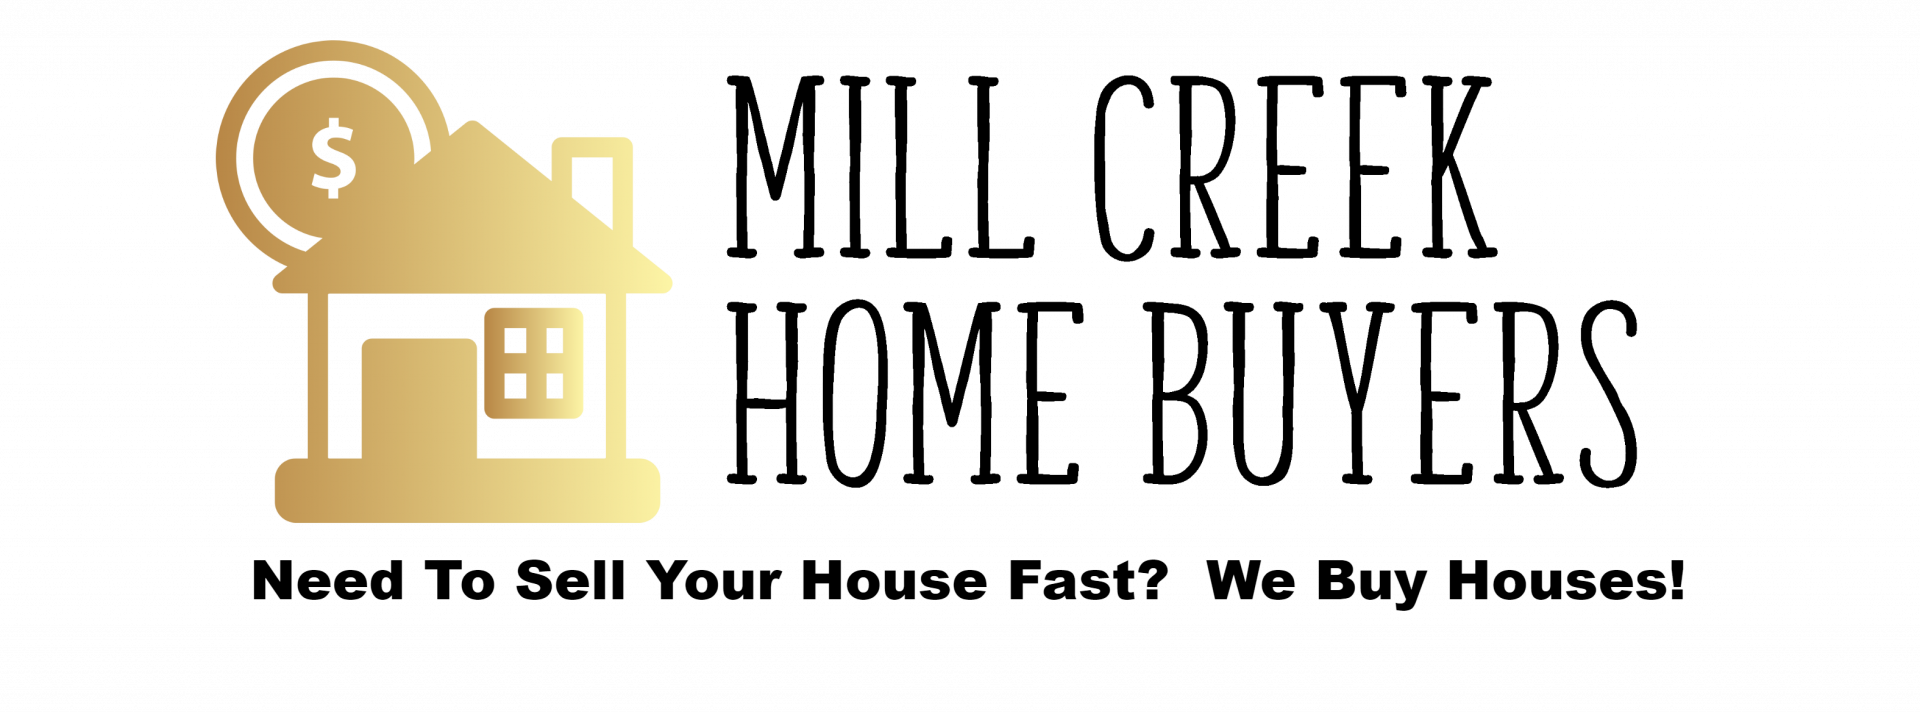 Mill Creek Home Buyers  logo